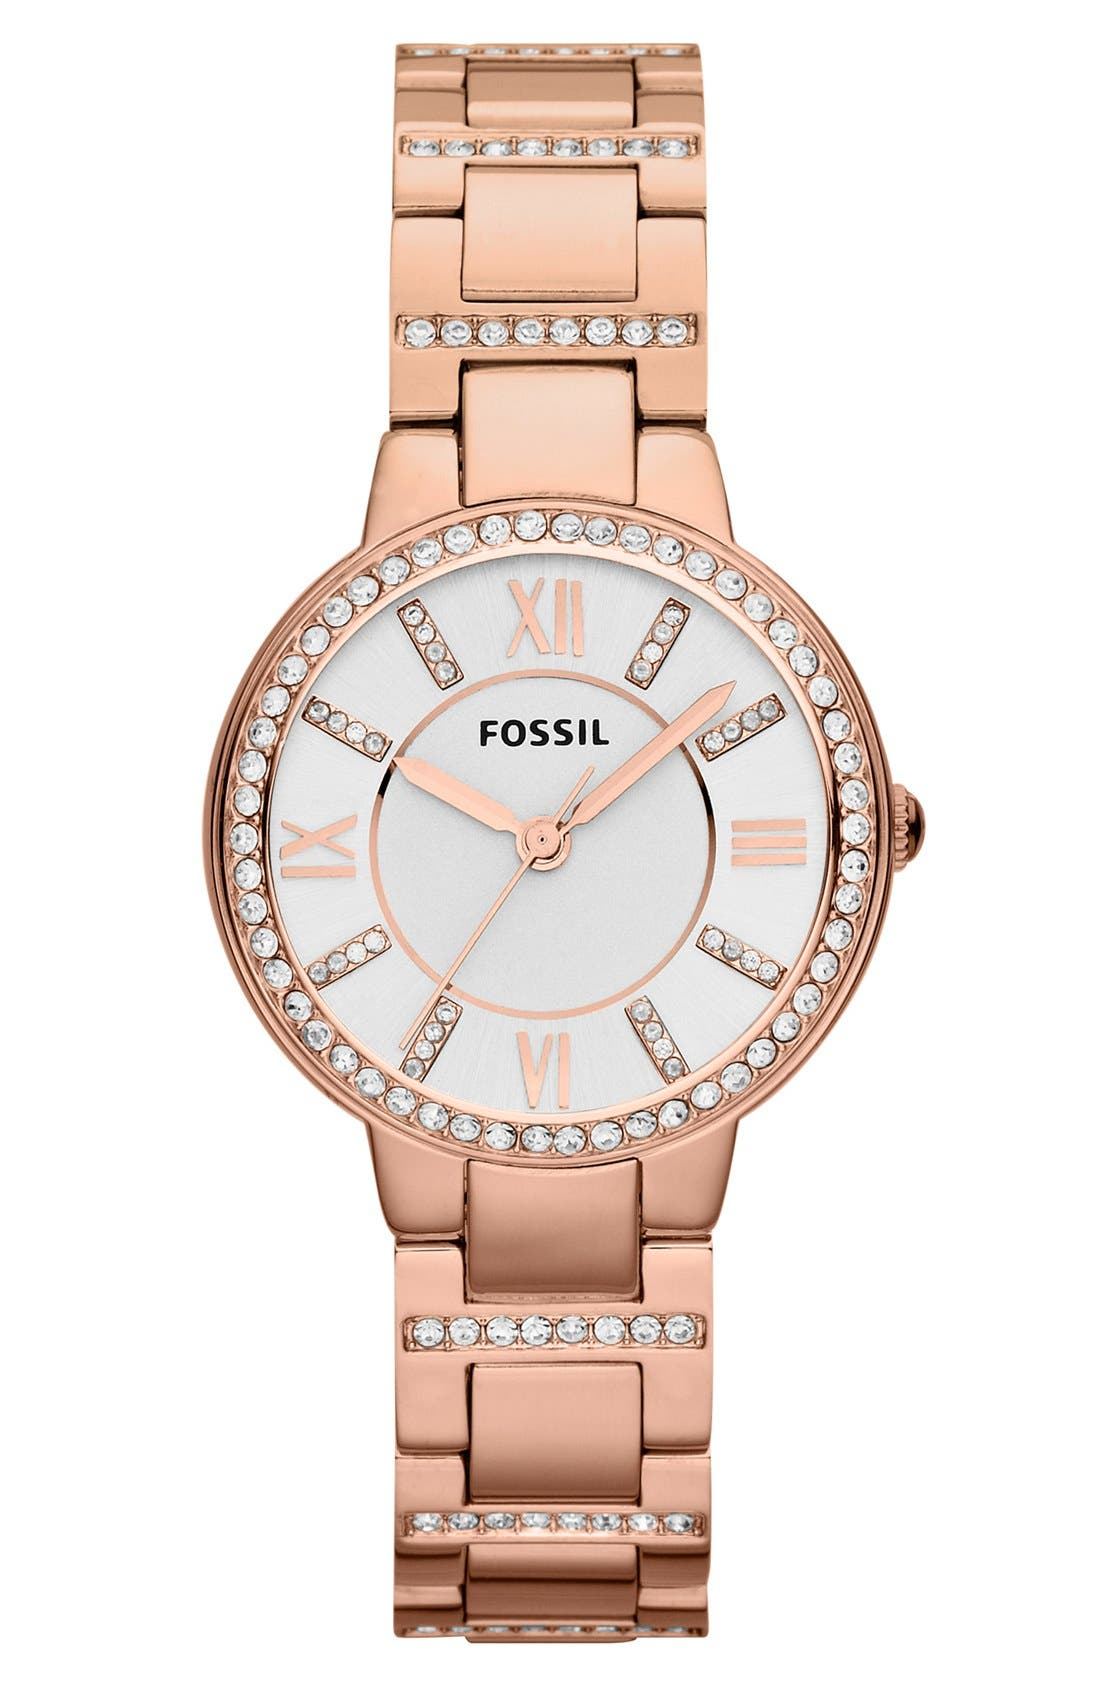 FOSSIL, 'Virginia' Crystal Accent Bracelet Watch, 30mm, Main thumbnail 1, color, ROSE GOLD/ WHITE/ ROSE GOLD